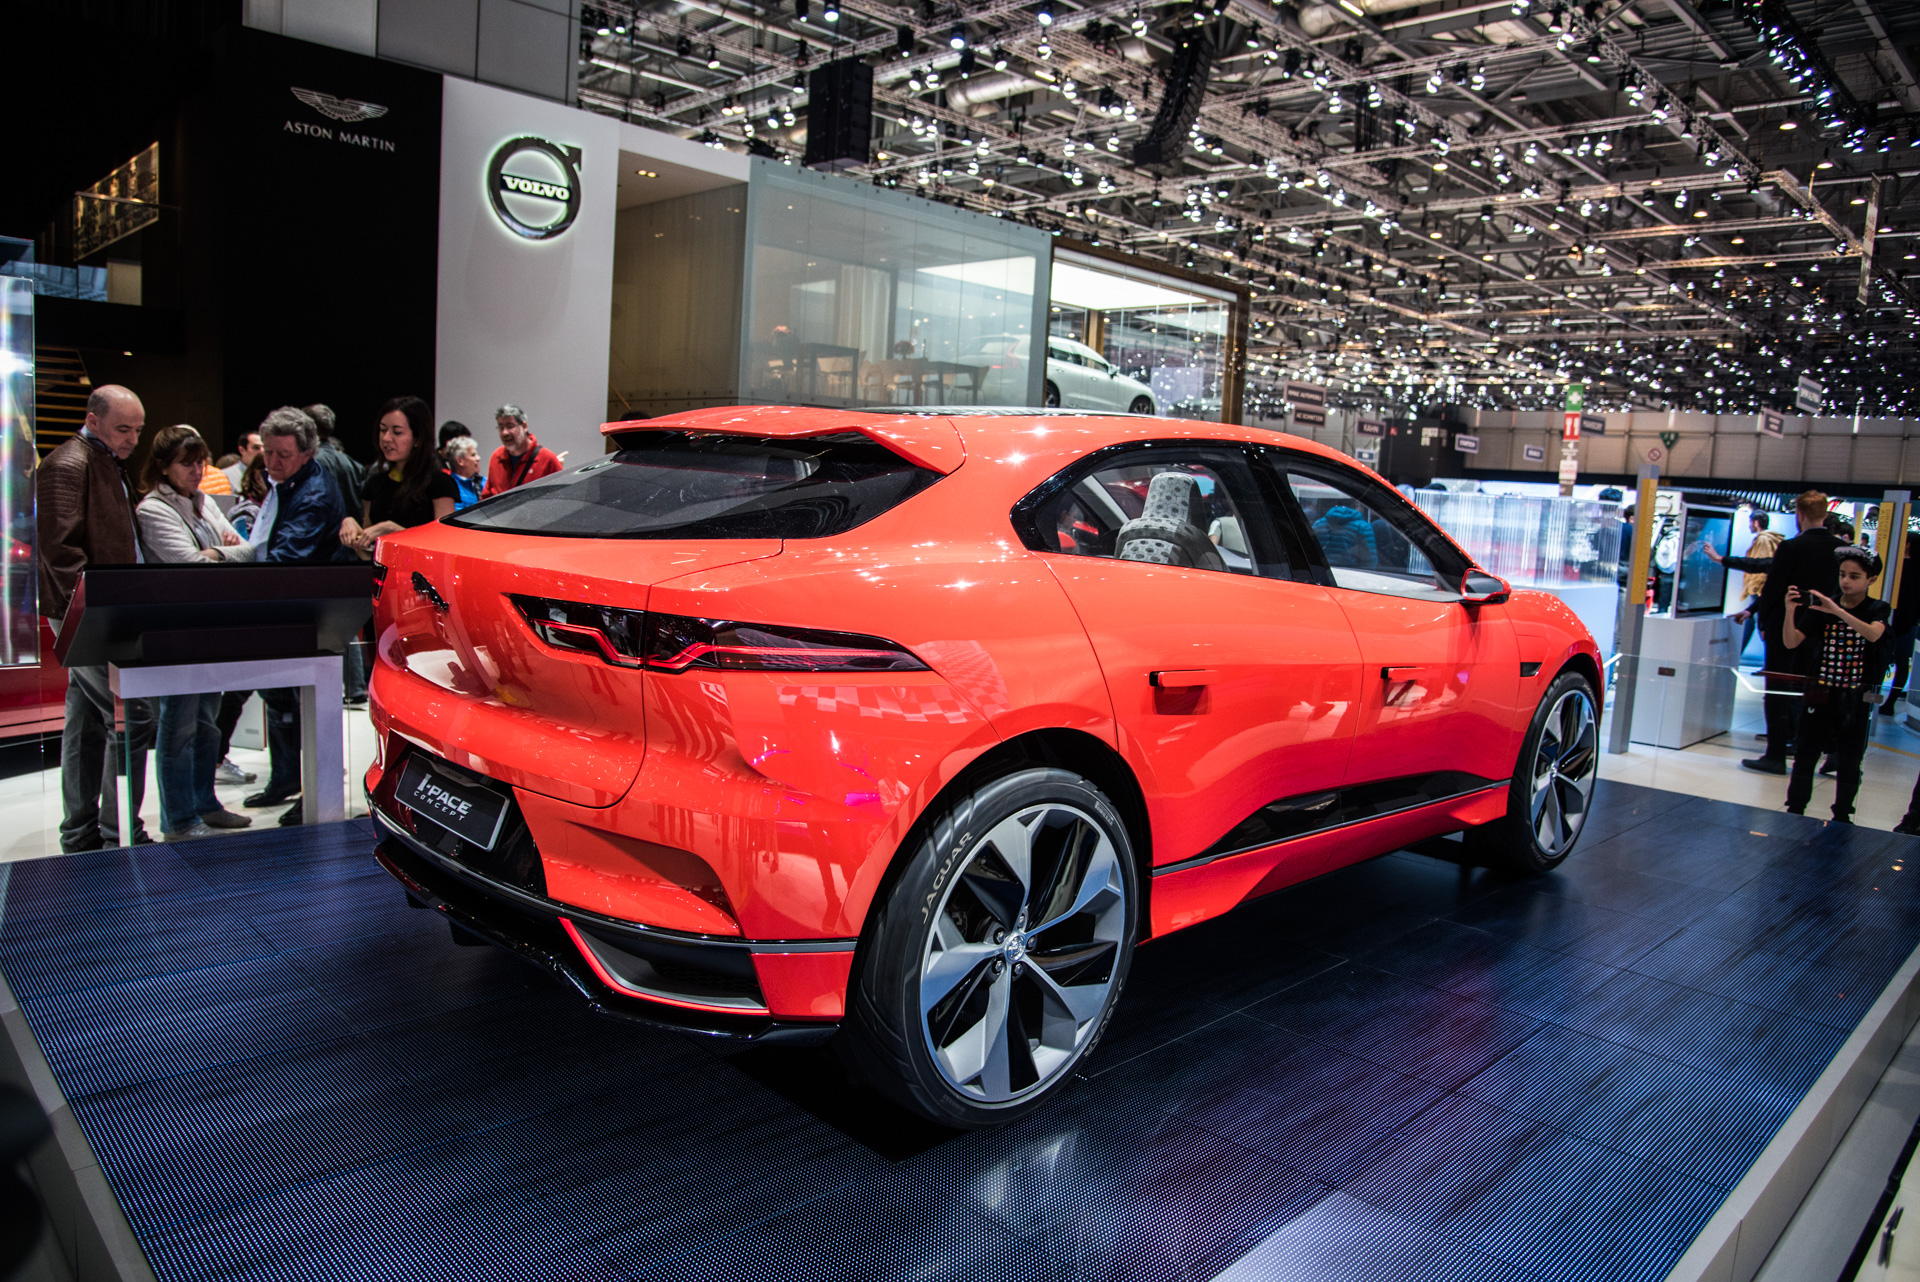 geneva-international-motor-show-igor-sinitsin-20